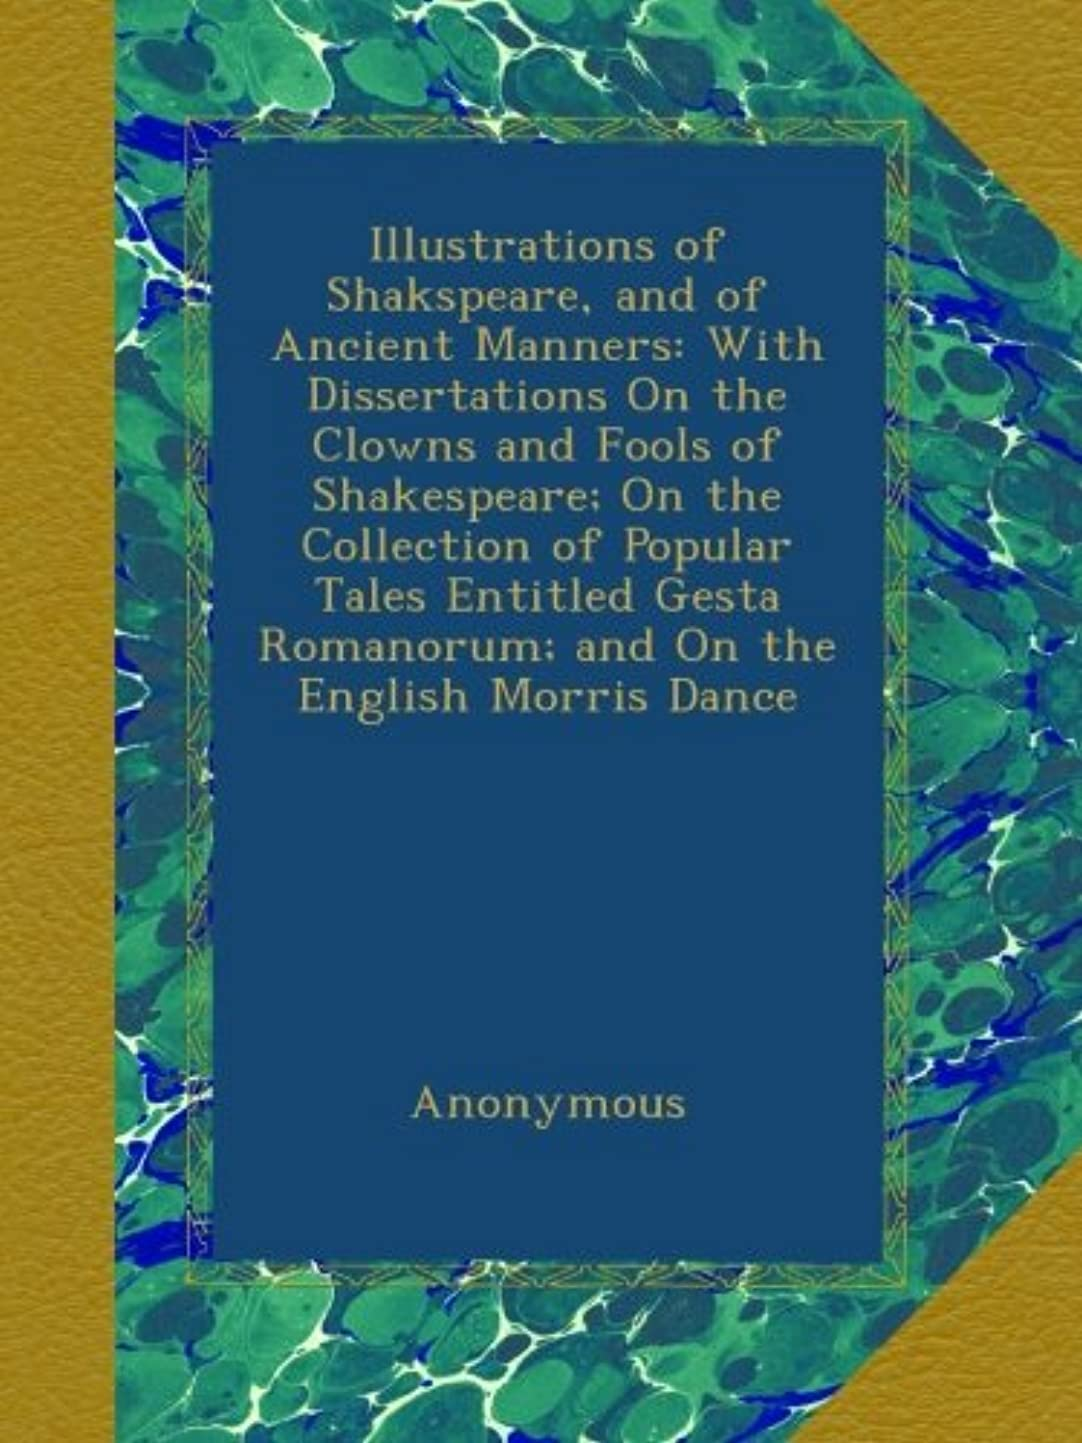 クリエイティブ許可疫病Illustrations of Shakspeare, and of Ancient Manners: With Dissertations On the Clowns and Fools of Shakespeare; On the Collection of Popular Tales Entitled Gesta Romanorum; and On the English Morris Dance